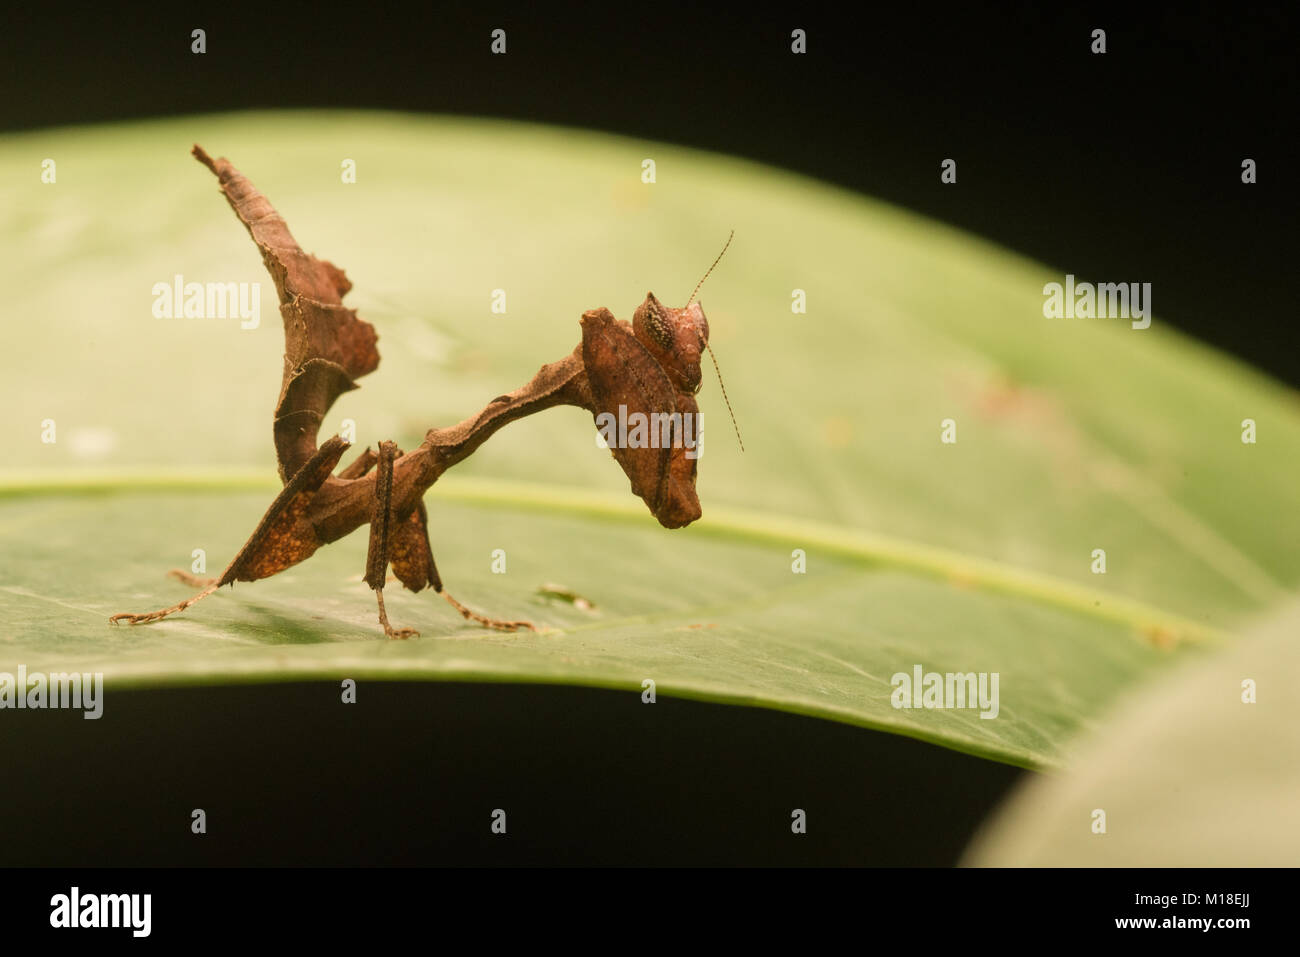 A small juvenile leaf mimic mantis (Acanthops sp) from the Amazon jungle. - Stock Image